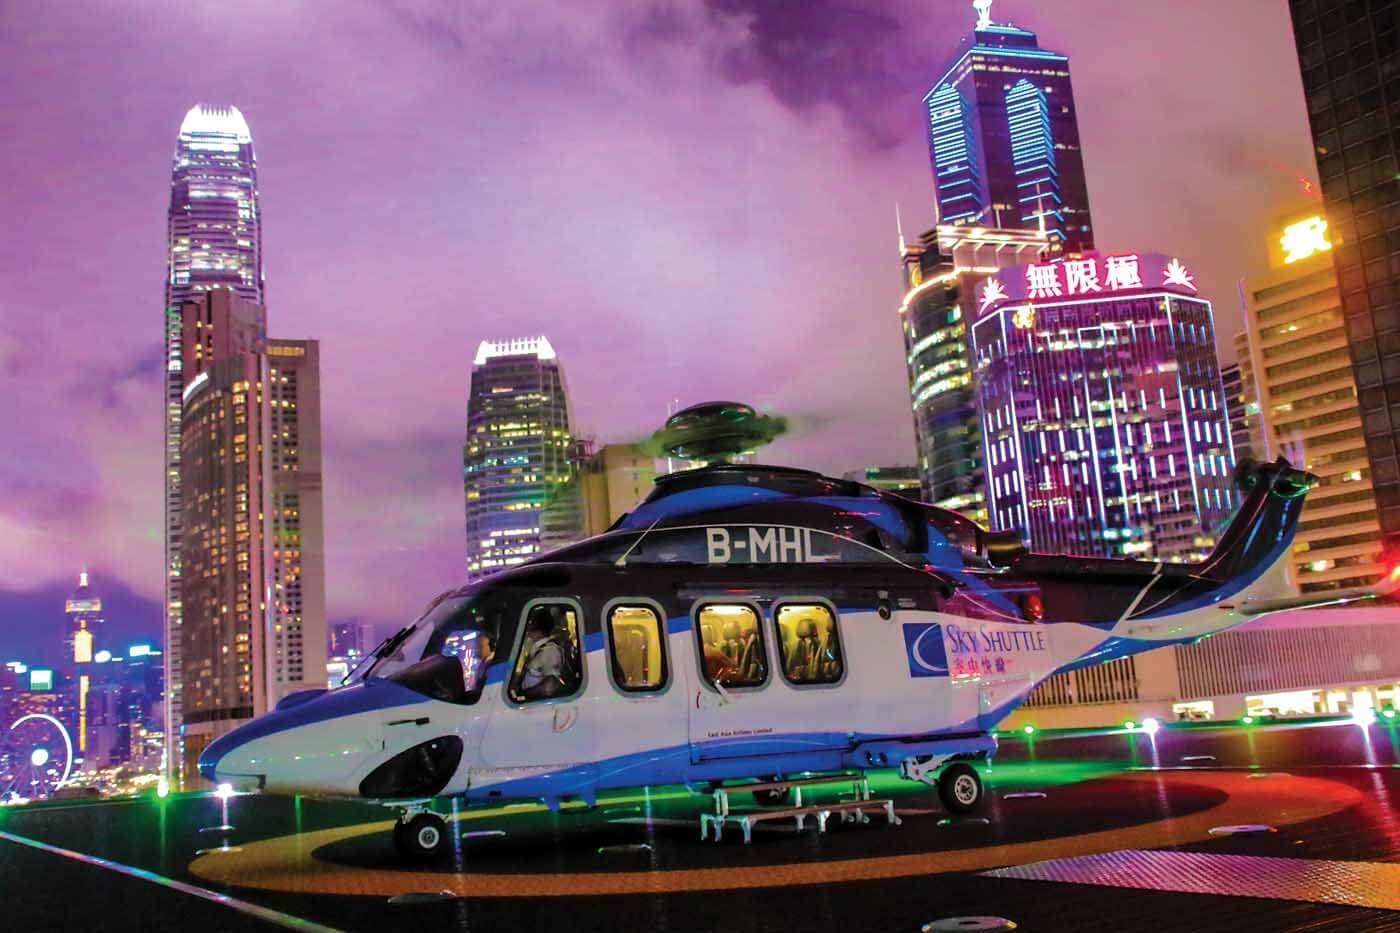 Every day, Sky Shuttle Helicopters flies 20 scheduled round-trip flights between Hong Kong and Macau, and three flights between Macau and Shenzhen, with a fleet of Leonardo AW139s. The Leonardo AW139 was introduced in April 2009 to make the inaugural flight from the new Sky Shuttle Heliport in Hong Kong. Chi Yin Liao Photo